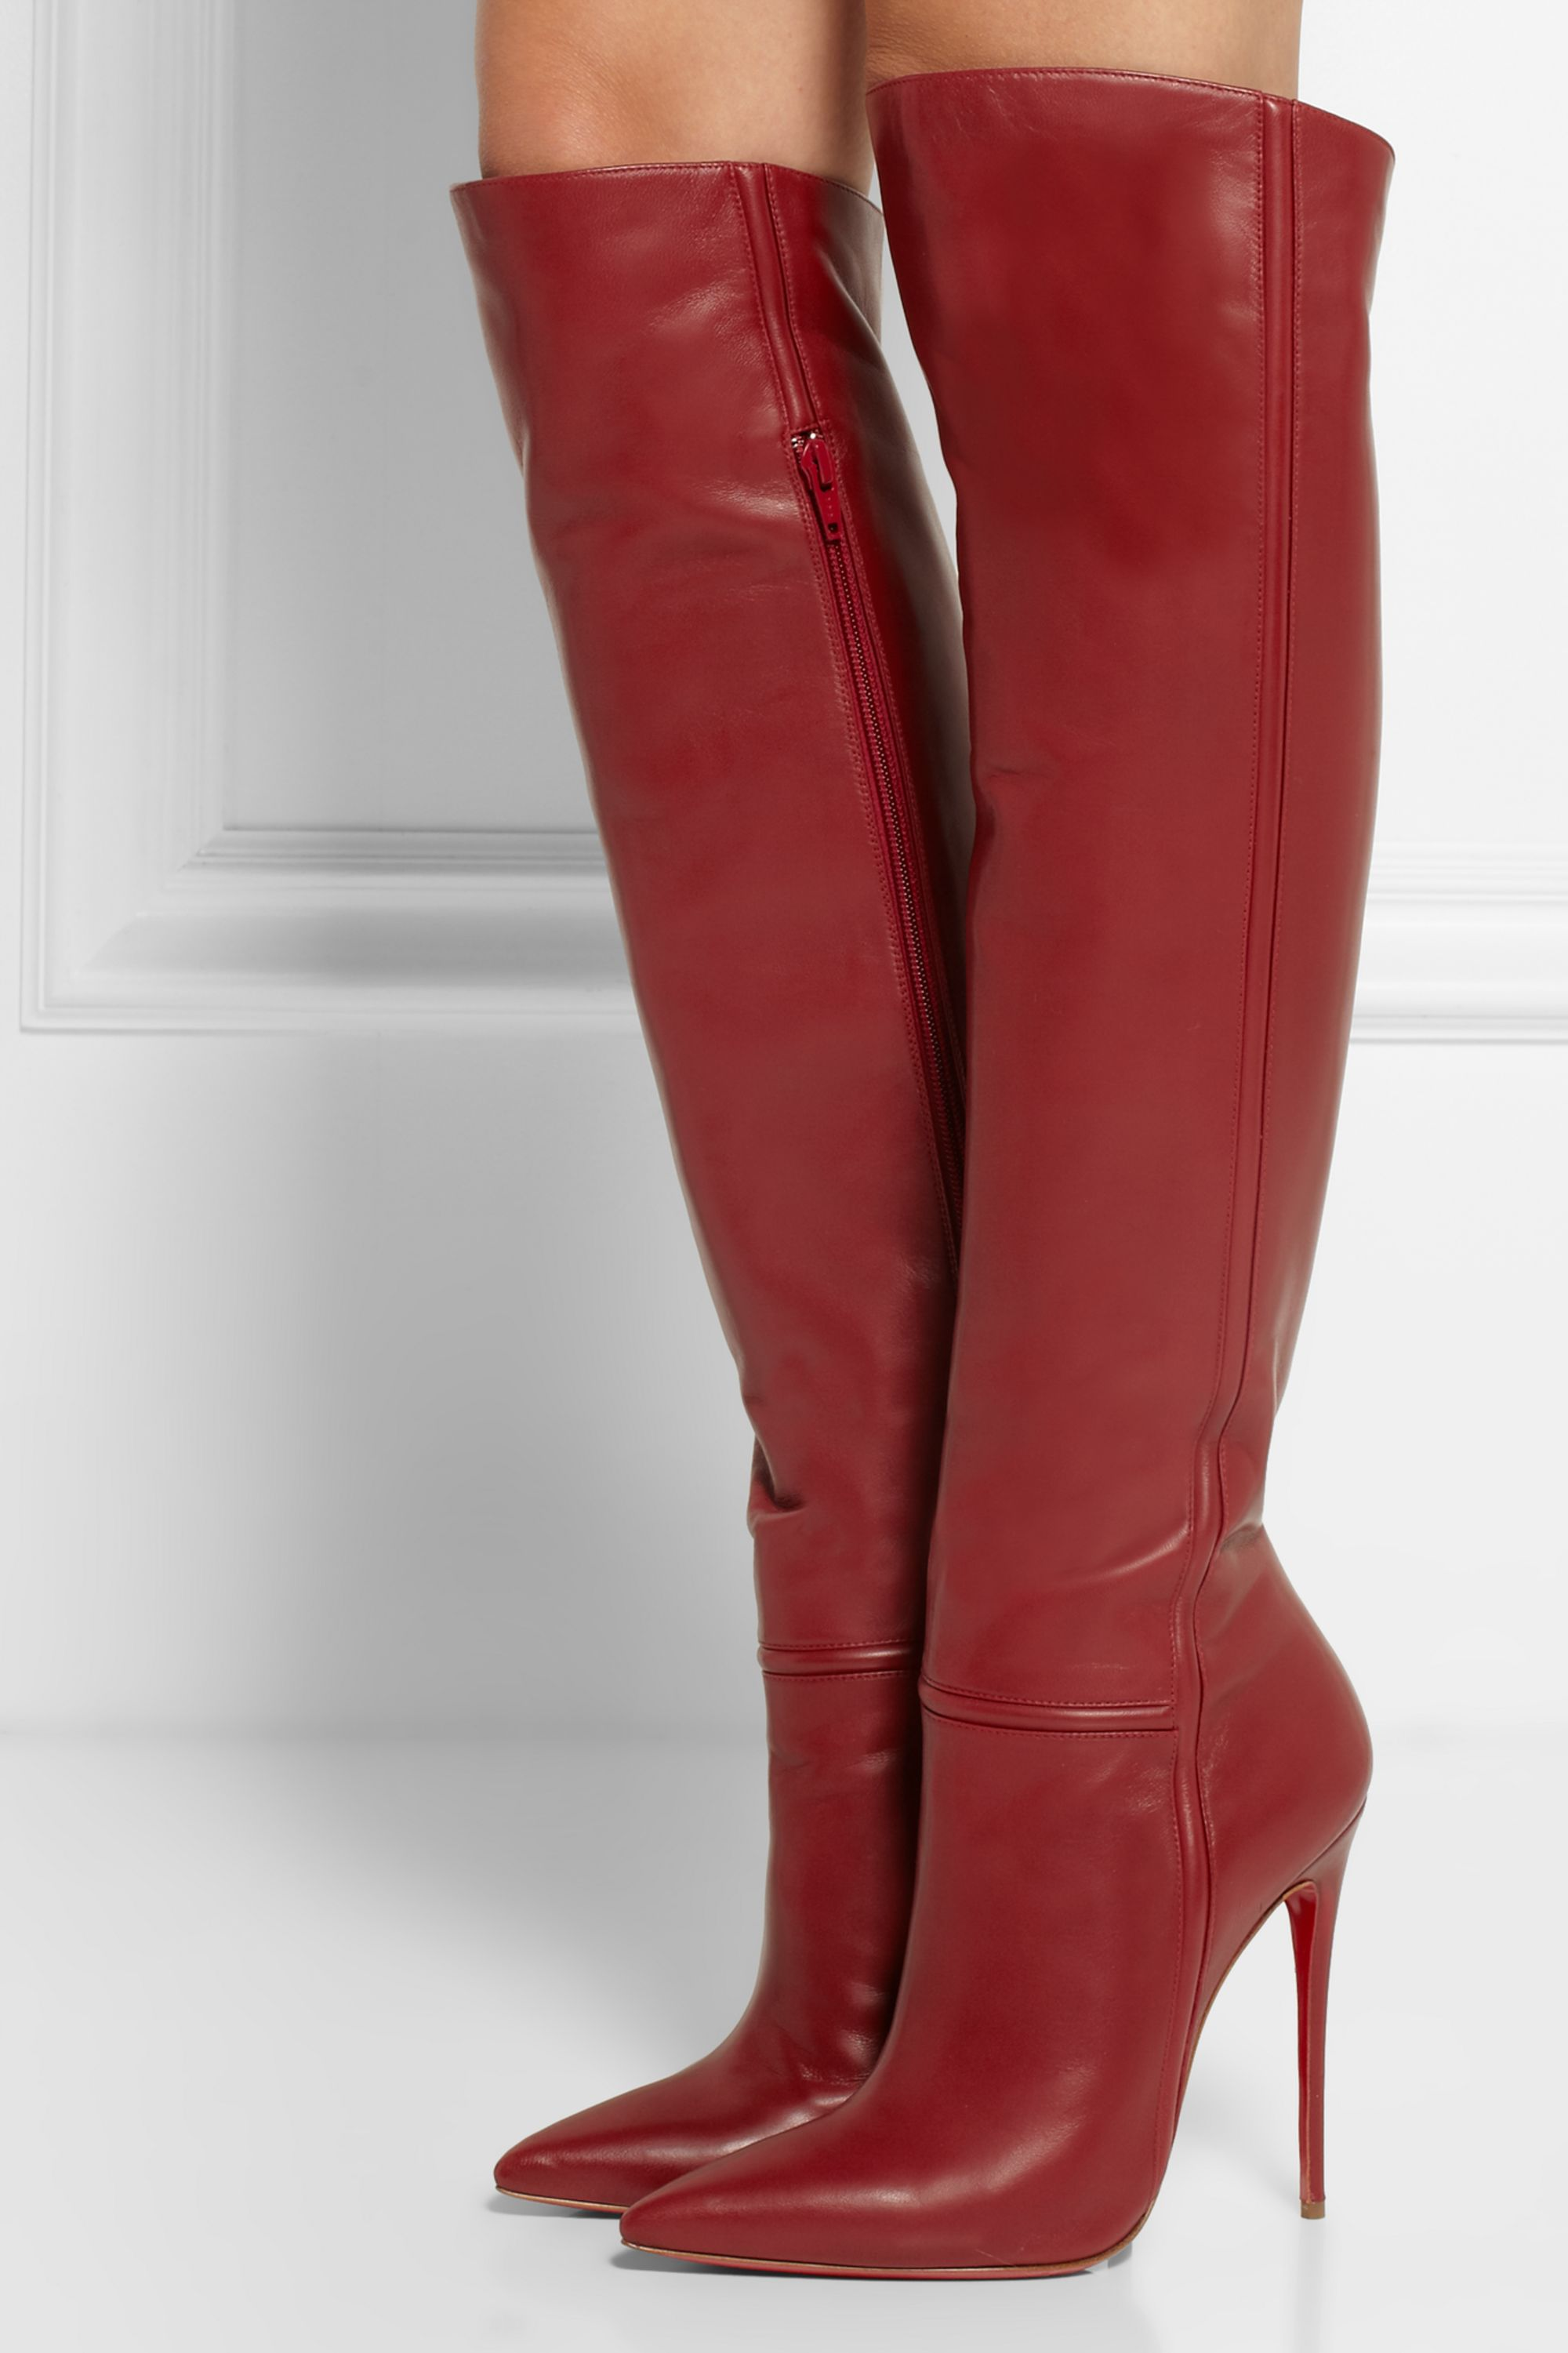 red louboutin boots